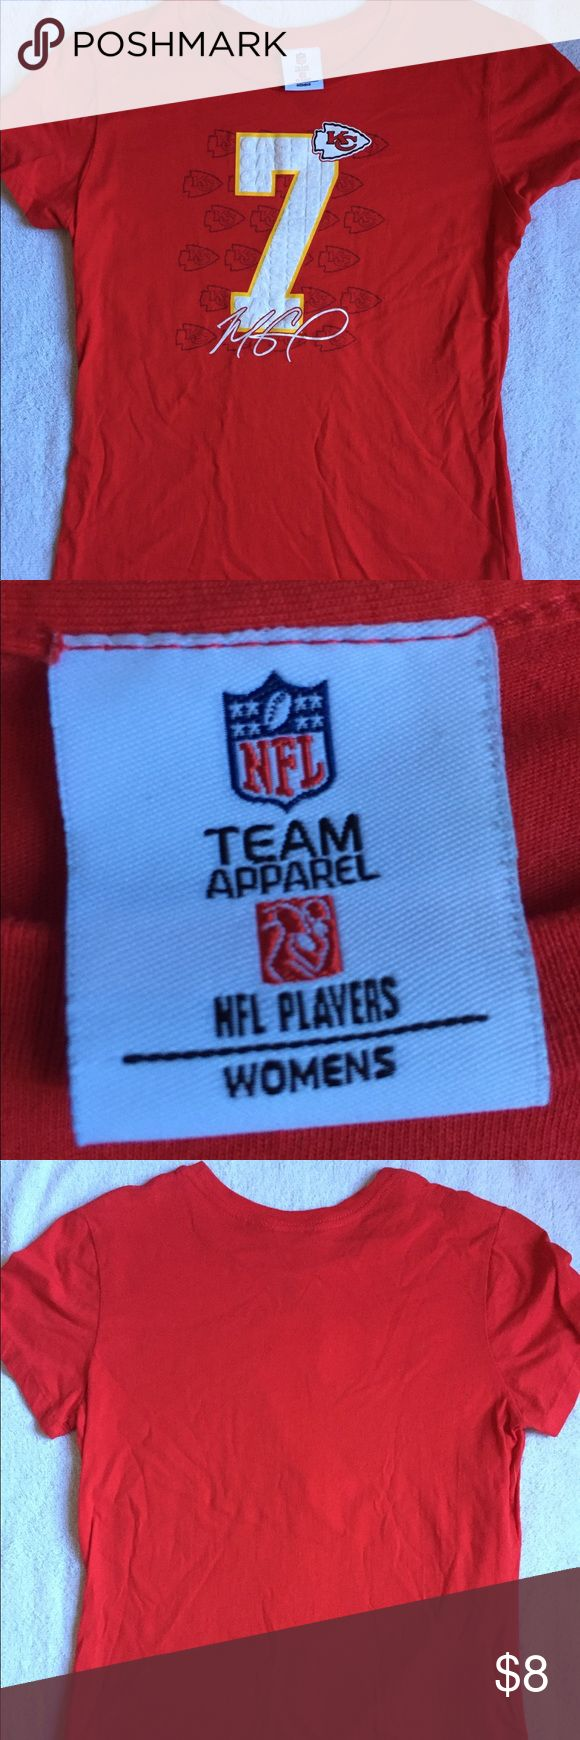 KC Chiefs Matt Cassel 7 Women's Shirt Barely worn. Fits snug.  Measurements: 23 inches in length, 18 inches across chest, 16 inches across waist.  Material: 100% Cotton Tops Tees - Short Sleeve